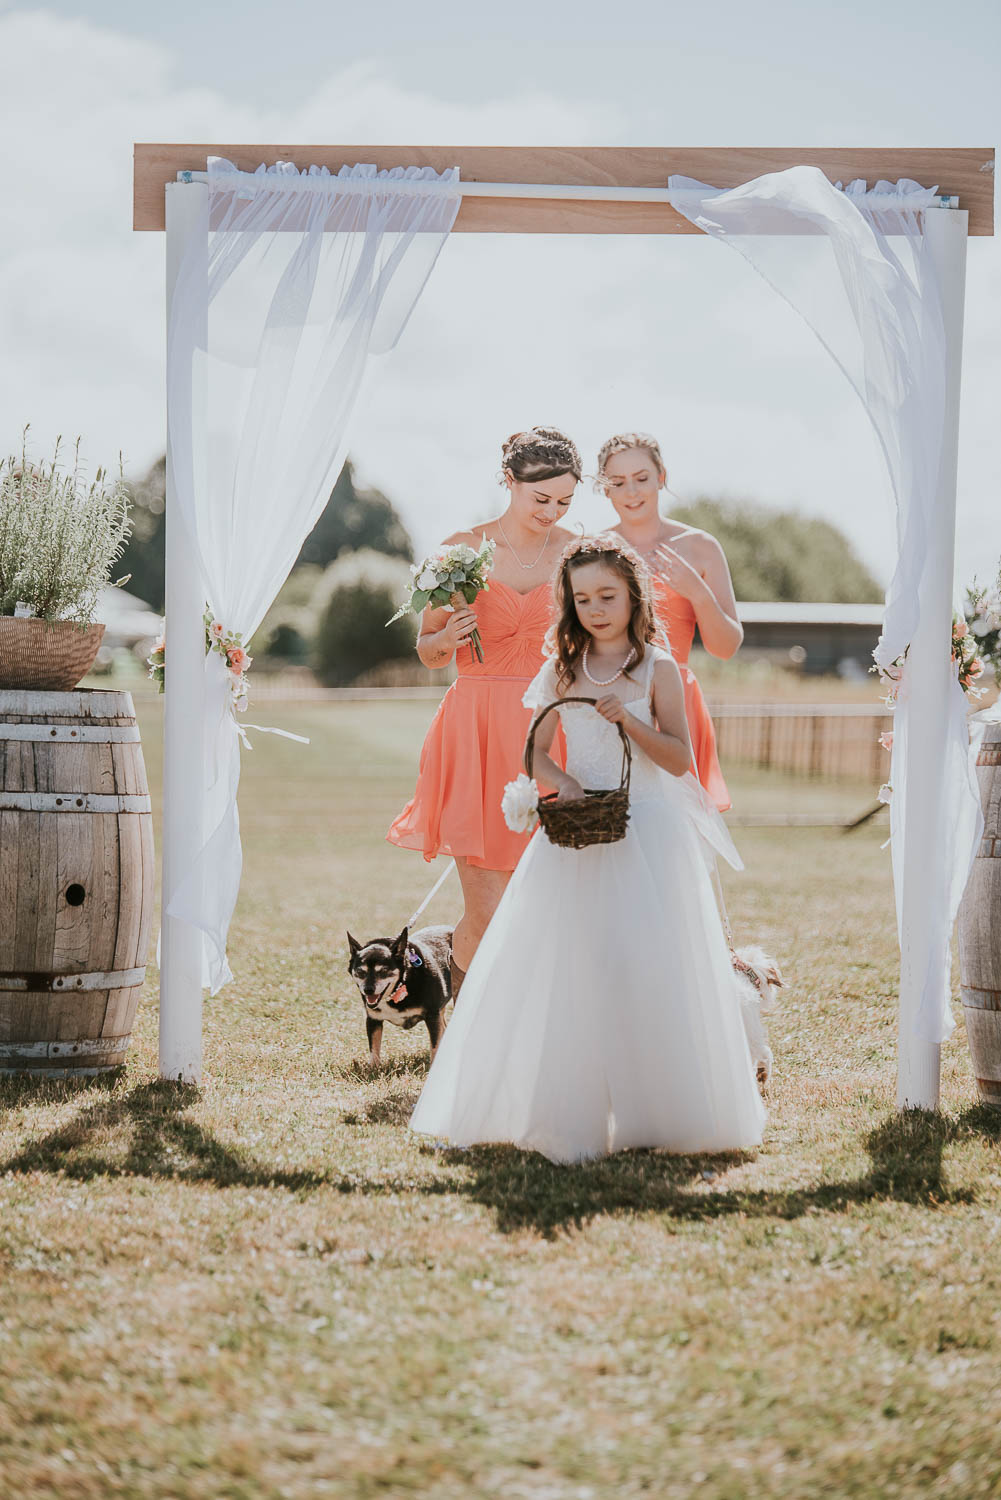 james-melinda-auckland-rustic-farm-wedding-29